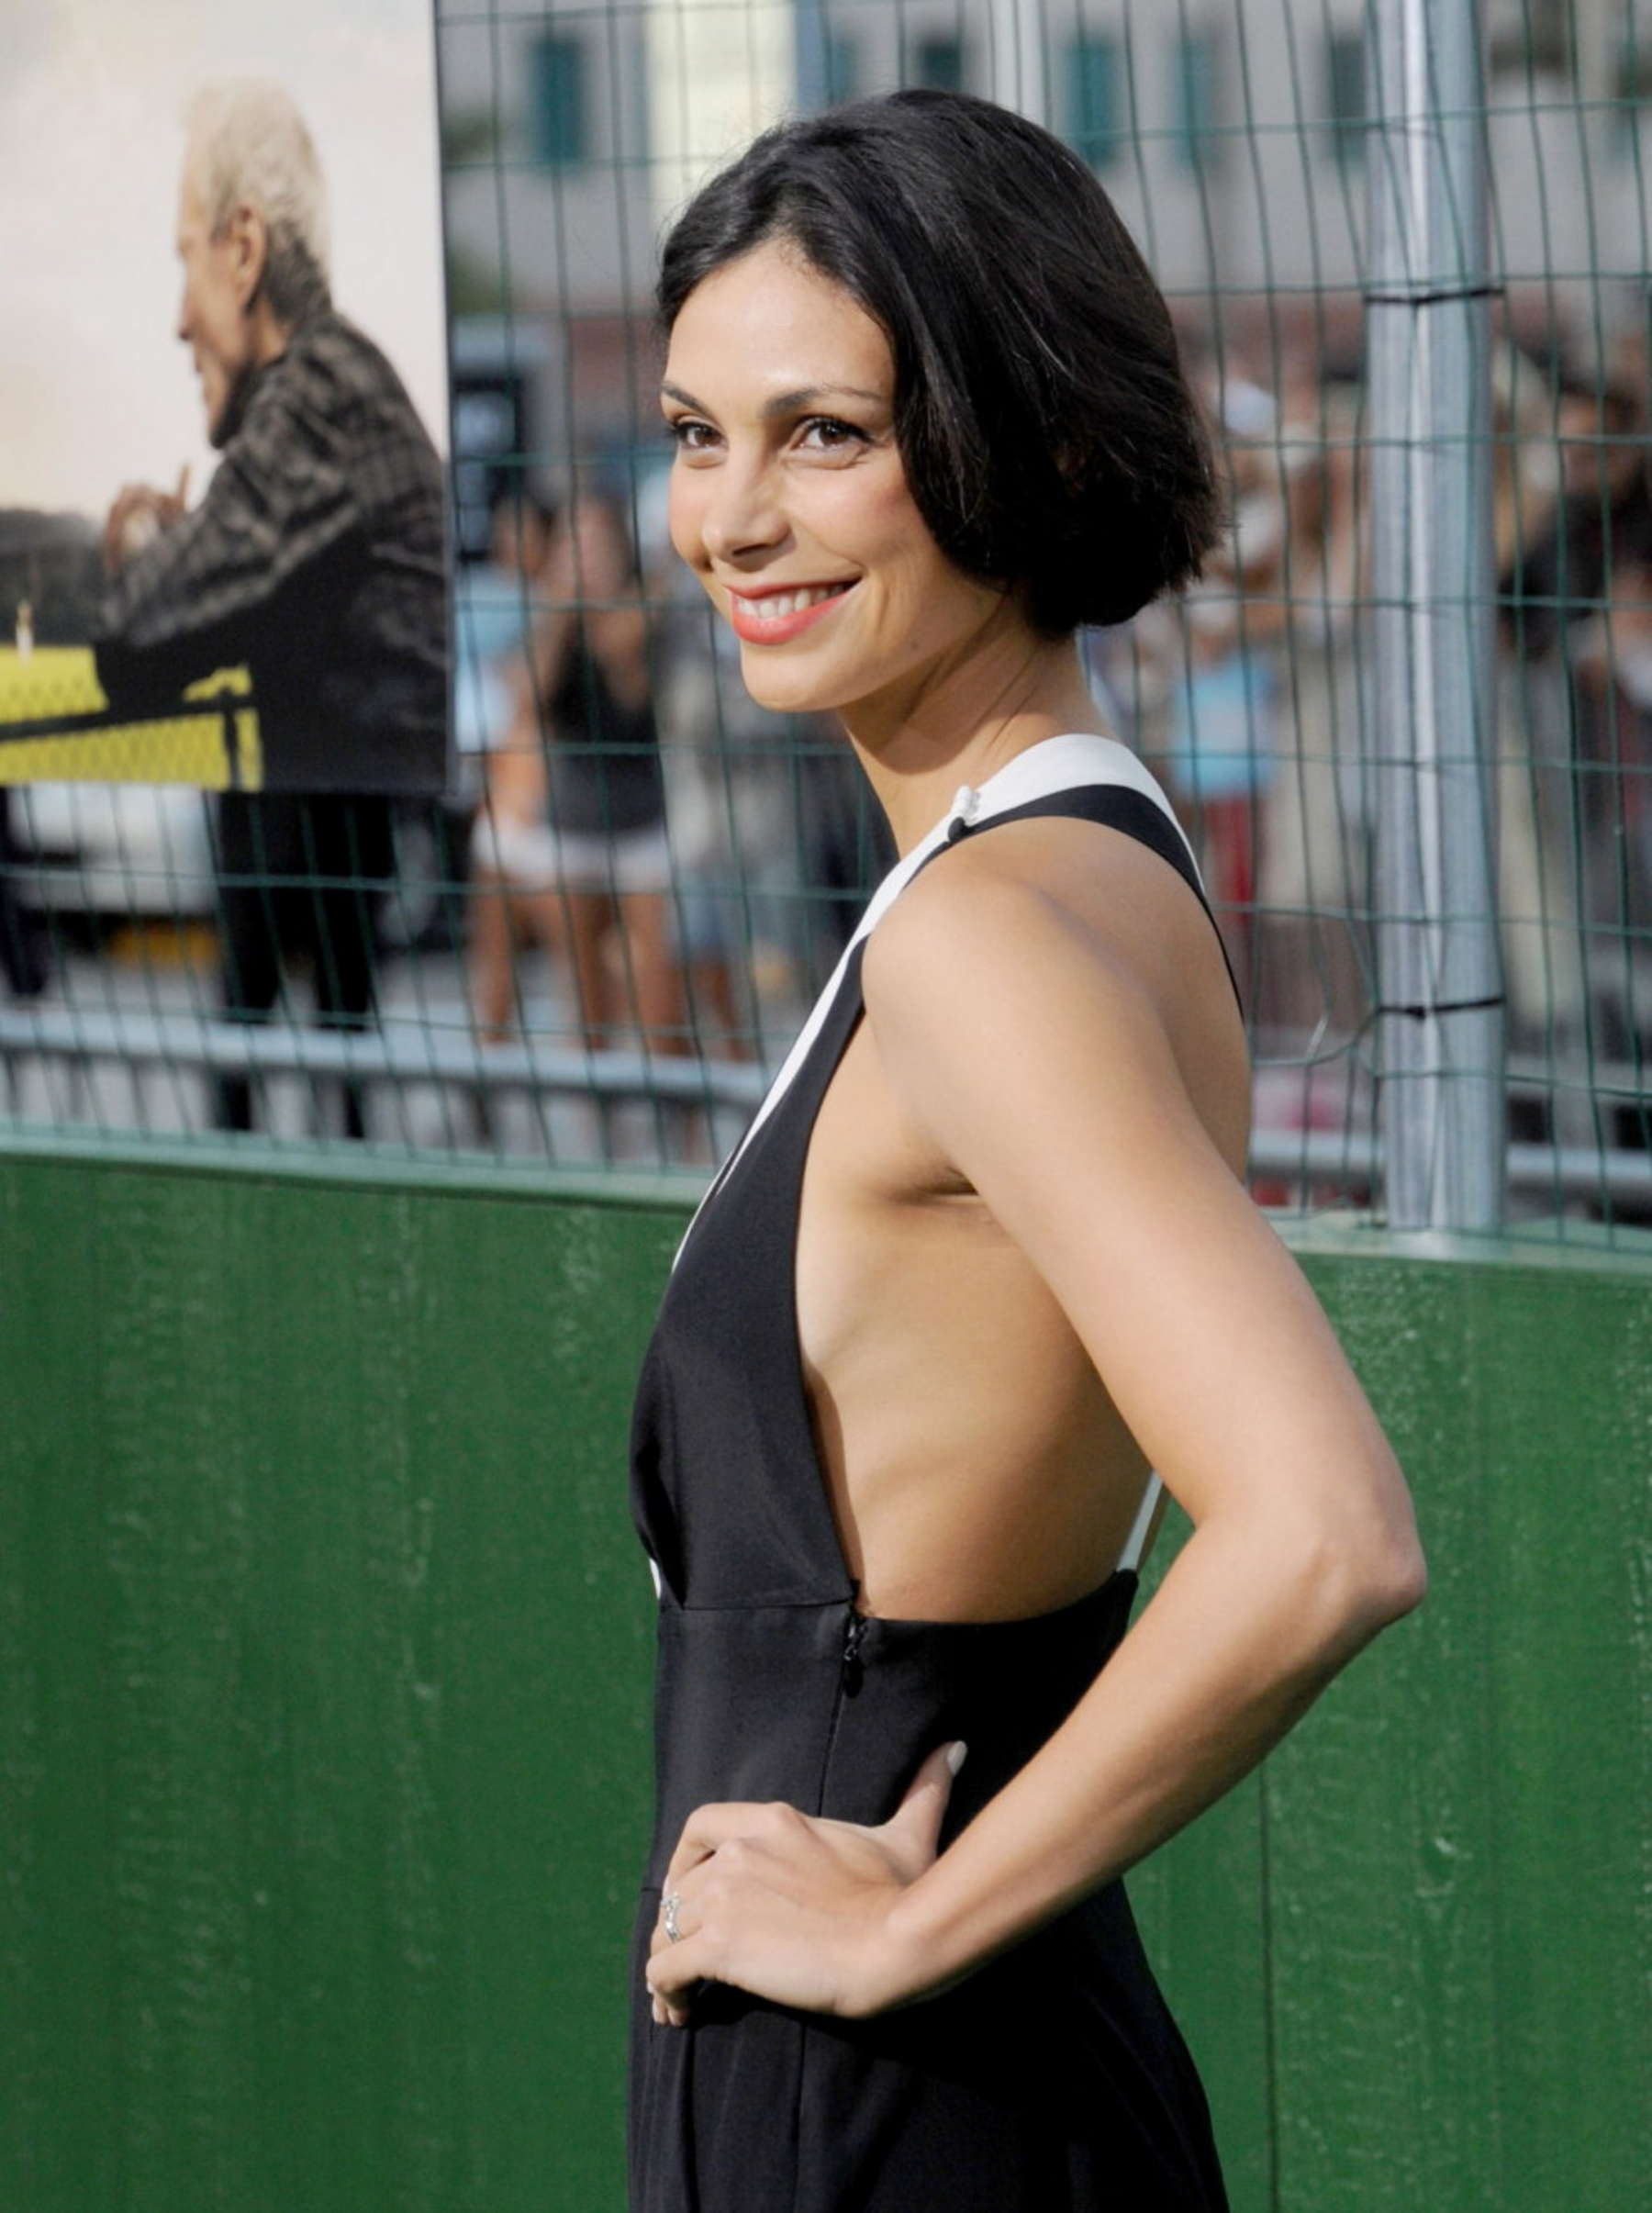 Cleavage Morena Baccarin nudes (97 photo), Tits, Is a cute, Selfie, legs 2020